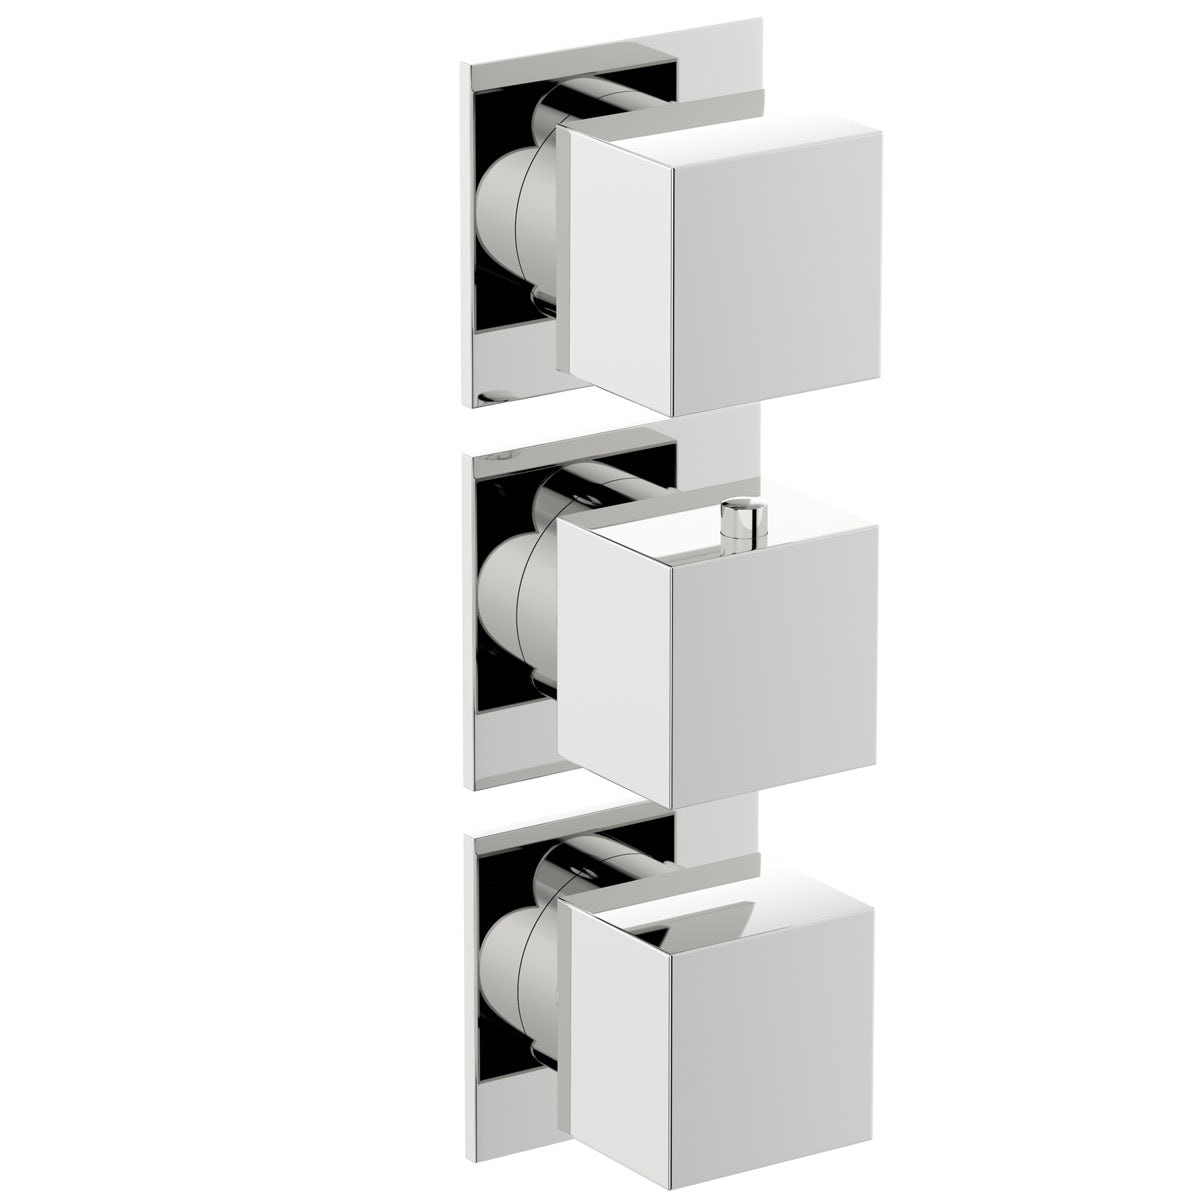 Mode Cooper square triple thermostatic shower valve with diverter